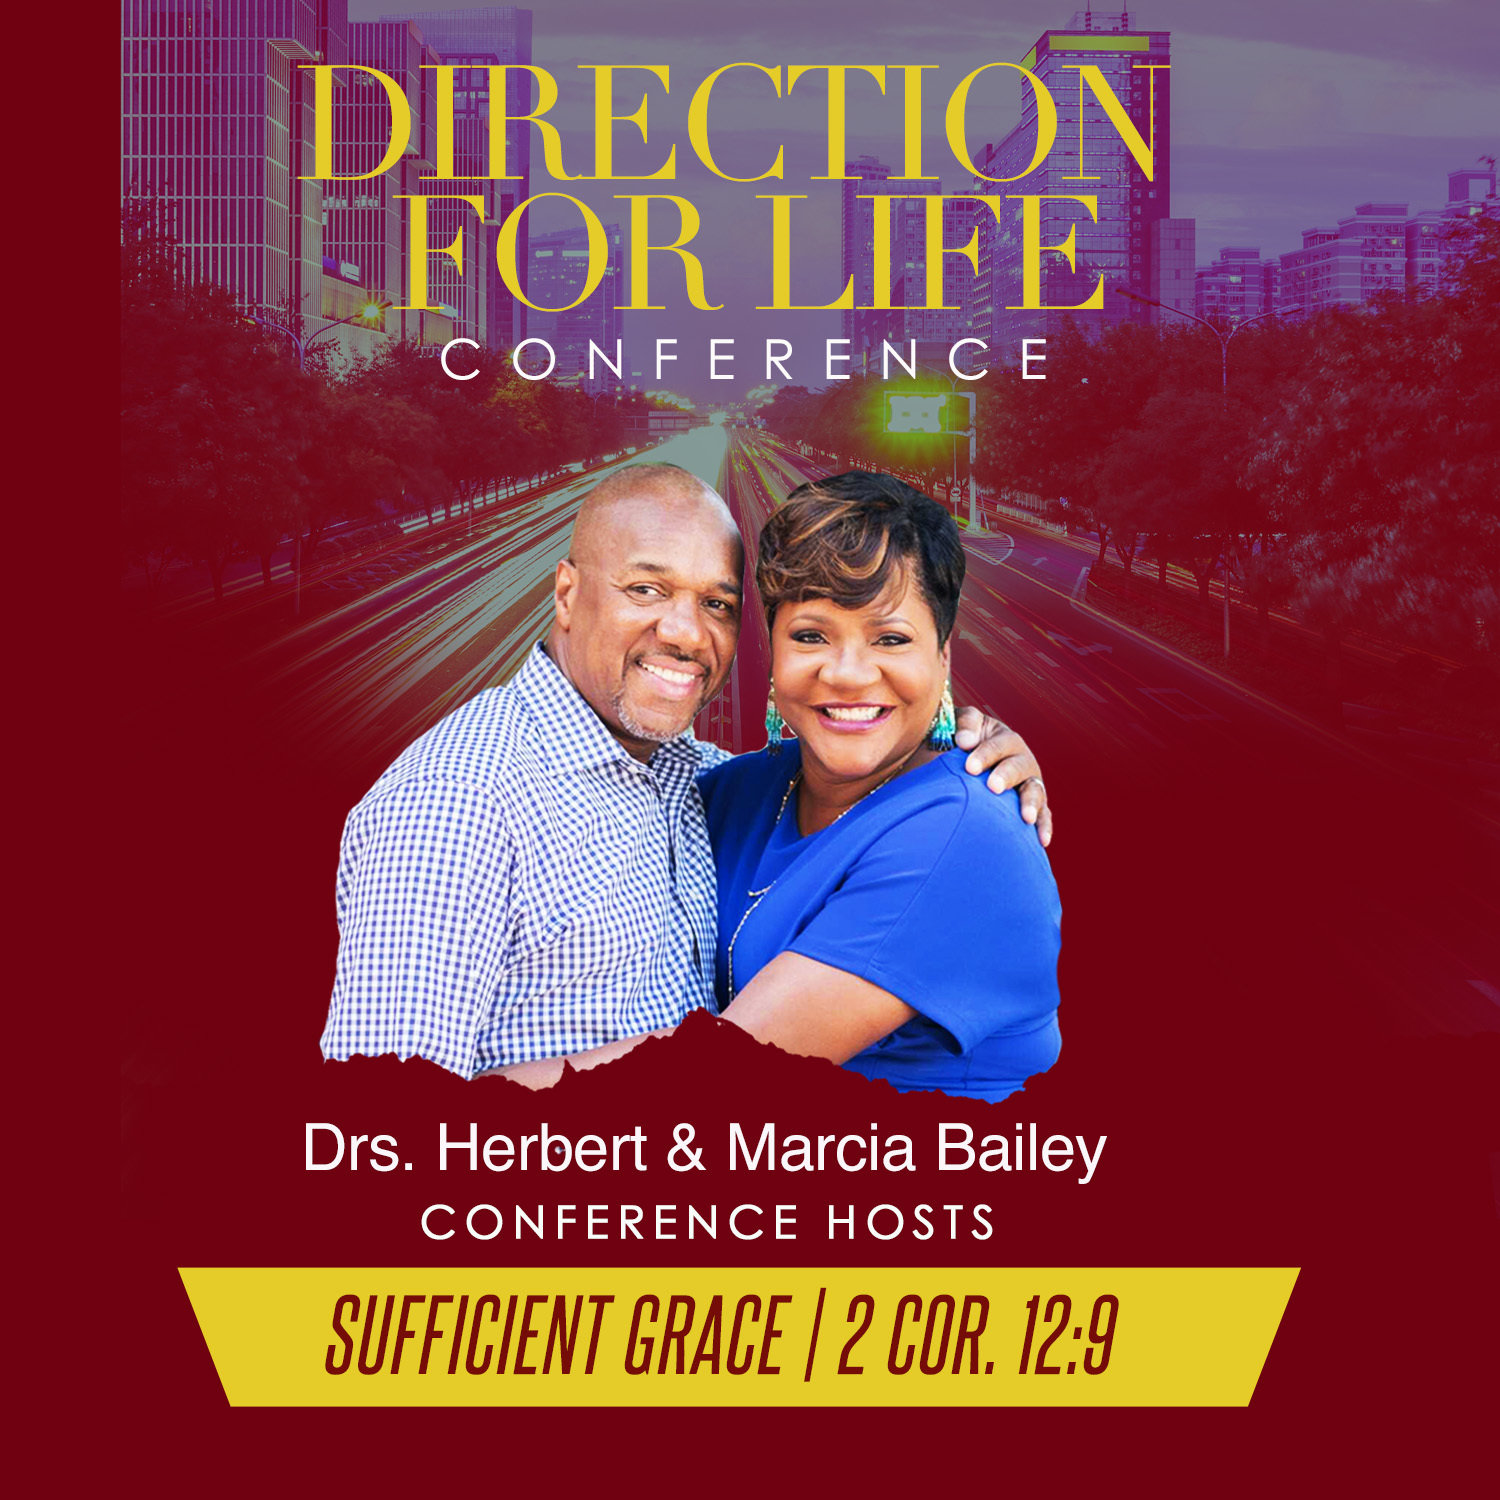 Direction for Life 2017: Sufficient Grace-CD Series CD5837